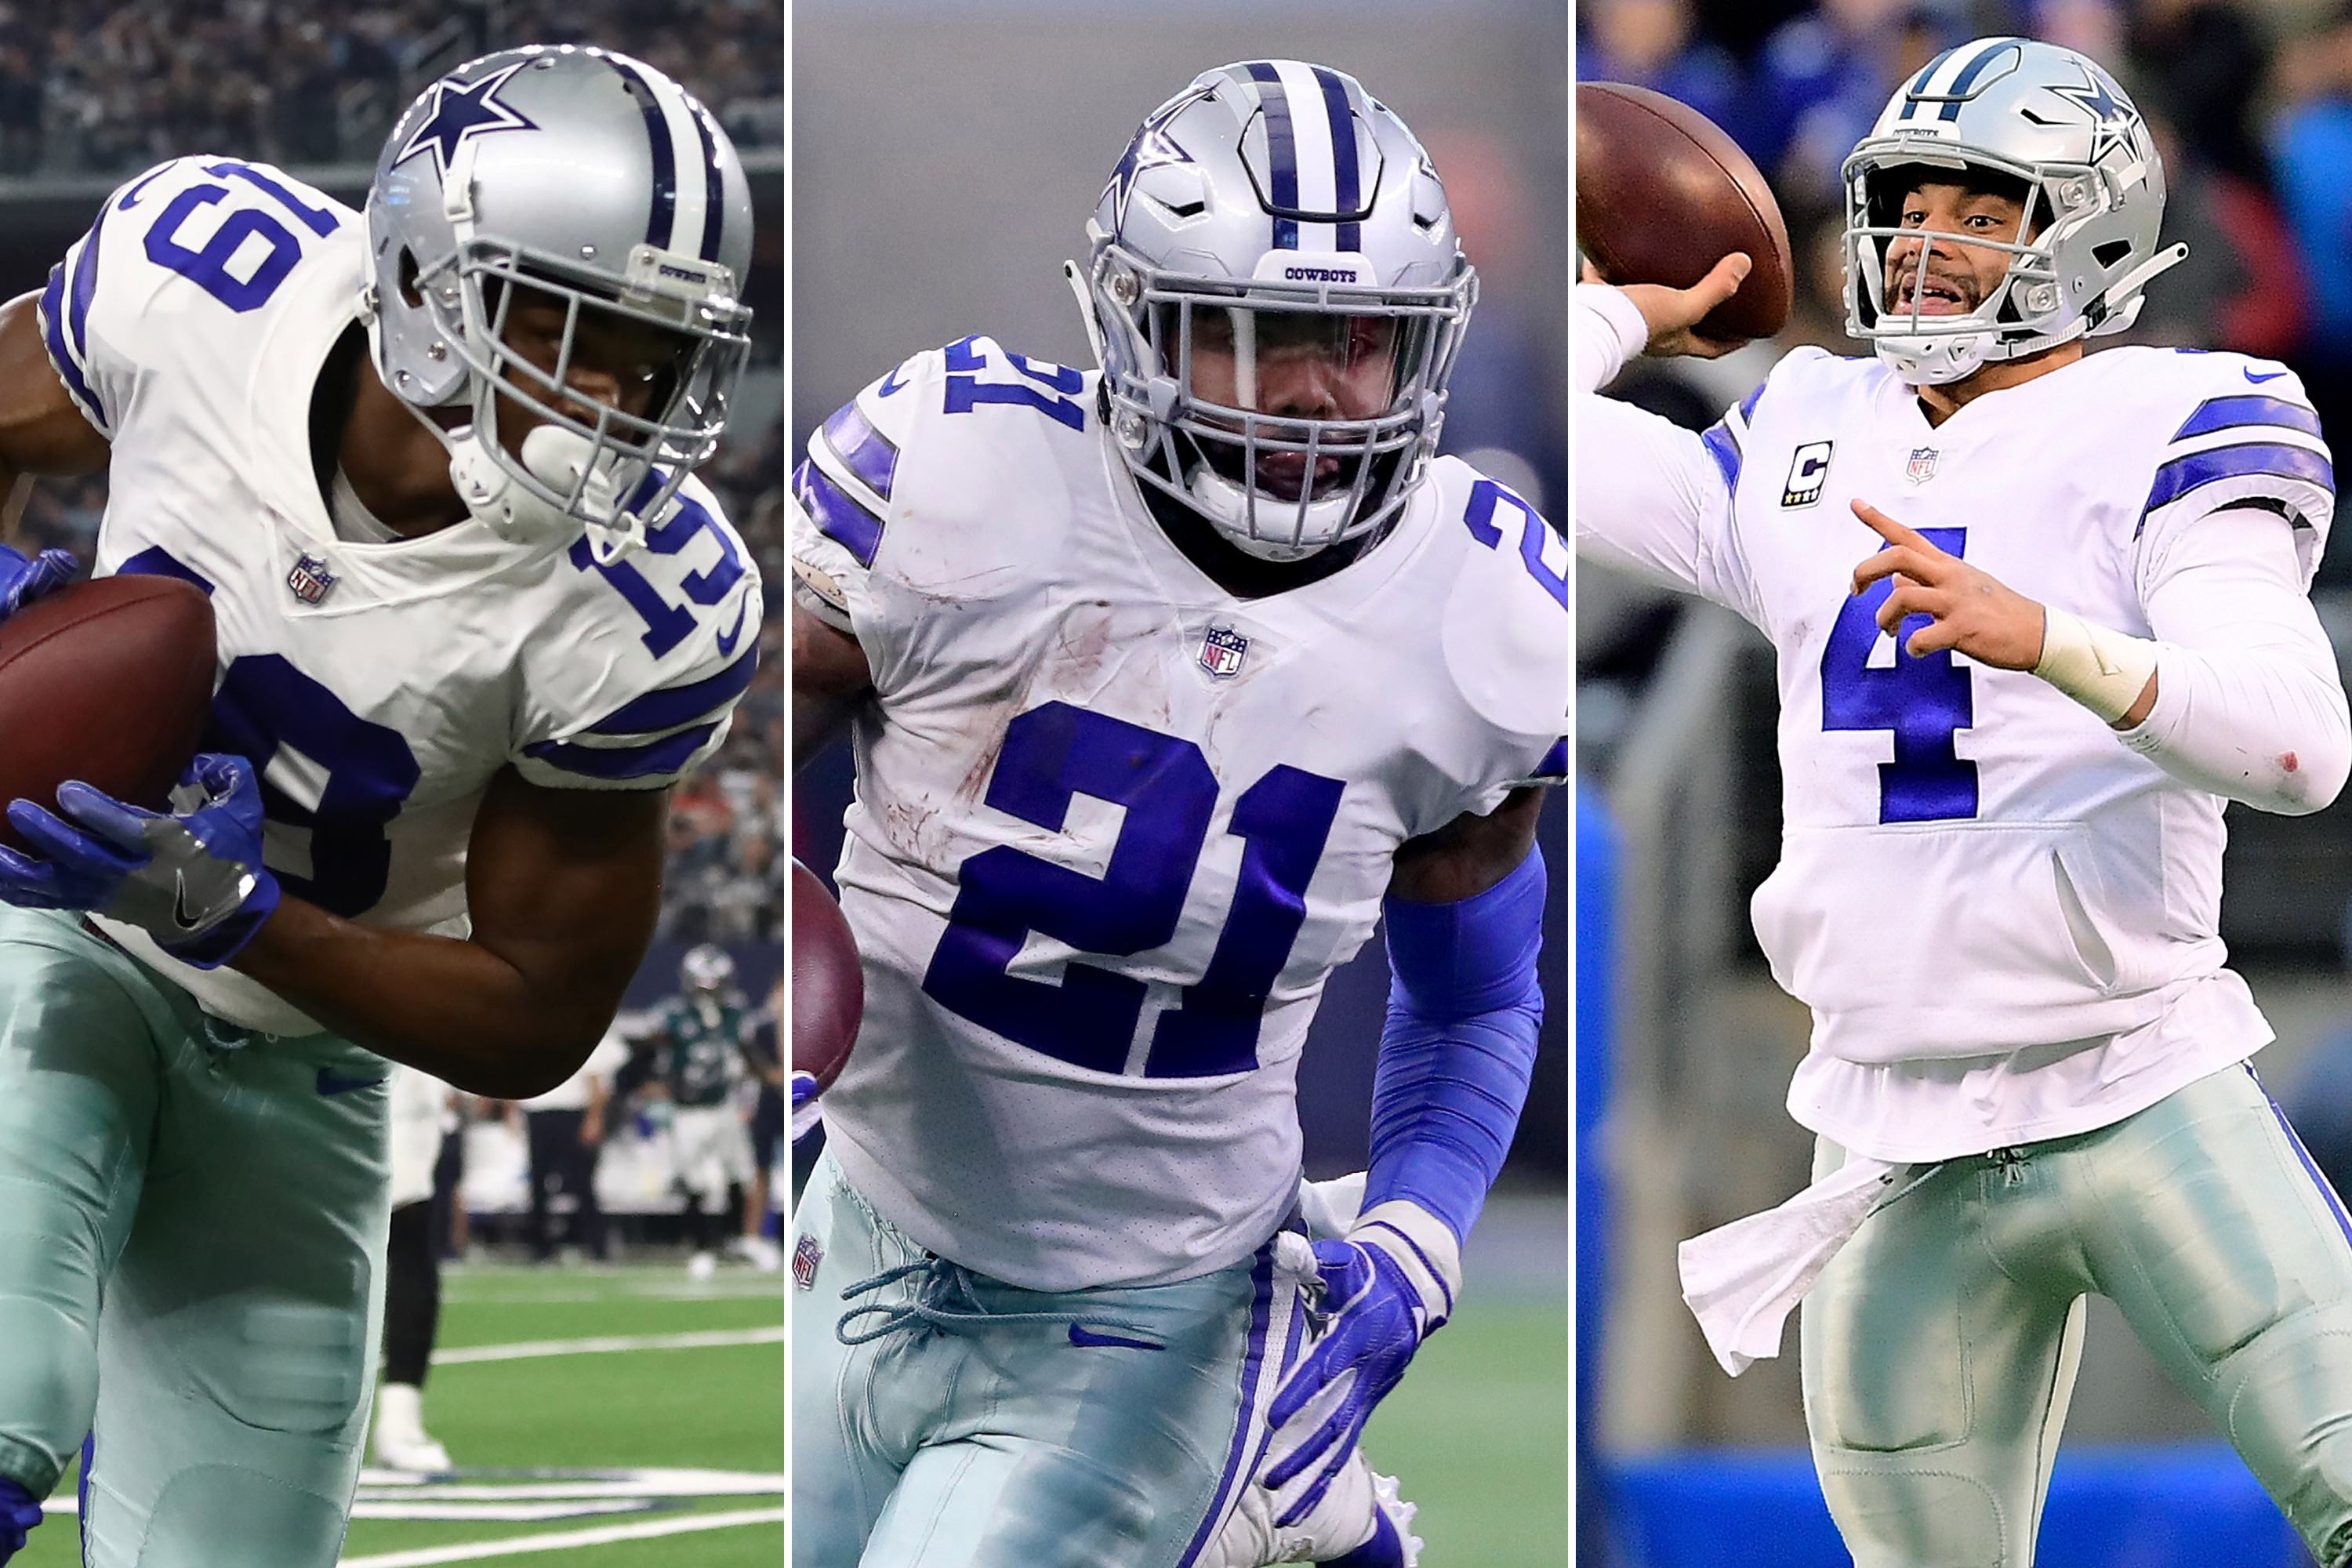 Sportrac Predicts Extensions for Dak Prescott, Ezekiel Elliott, and Amari Cooper